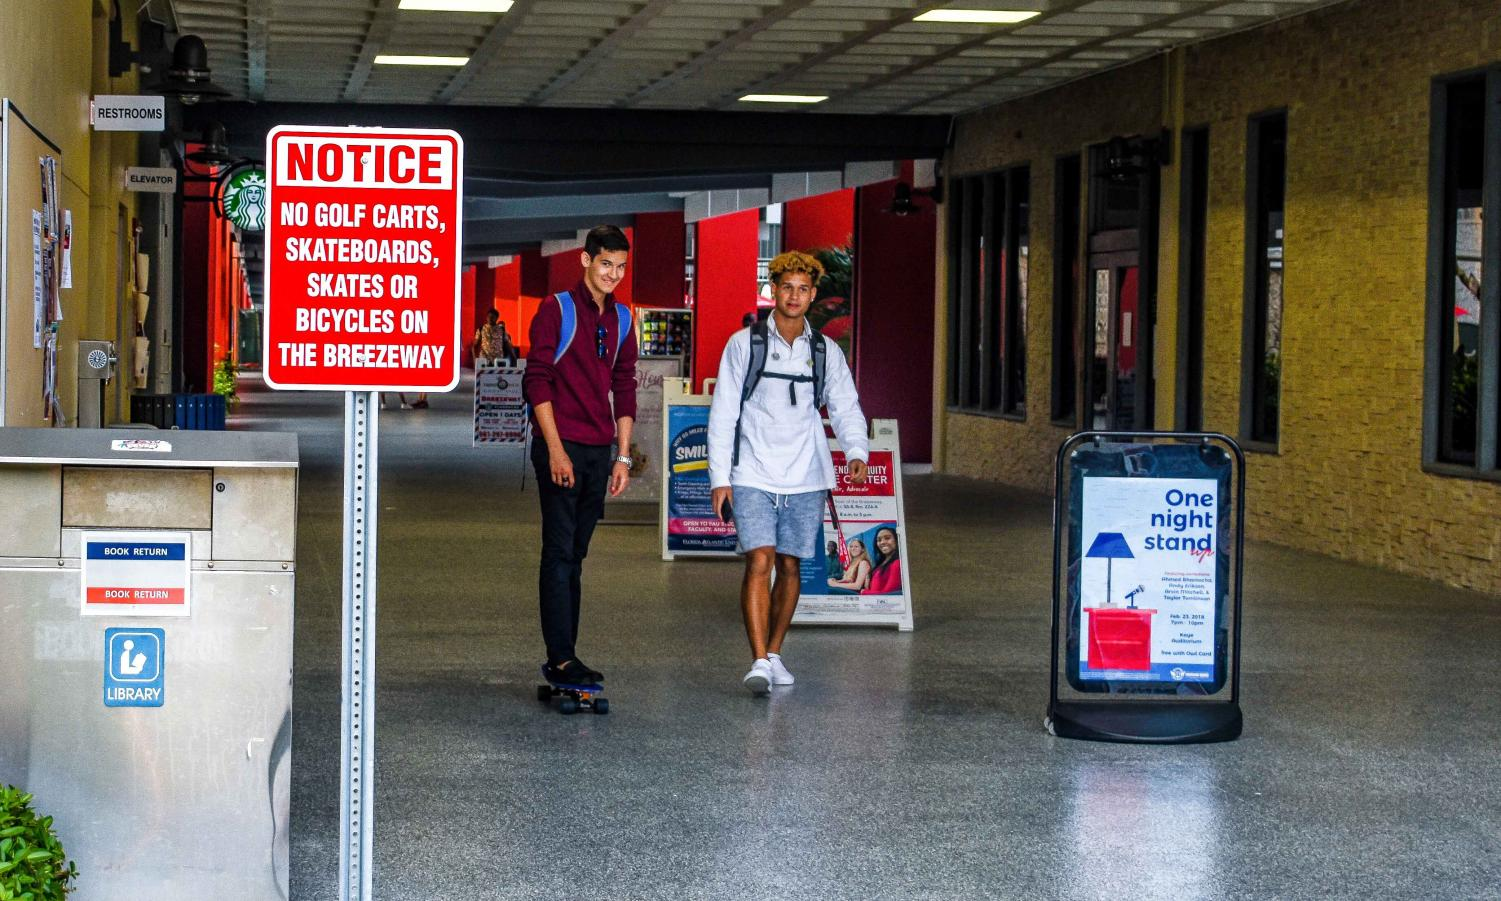 Despite signs prohibiting skateboarding in the Breezeway, a student rides his board toward the entrance near the food court. Anthony